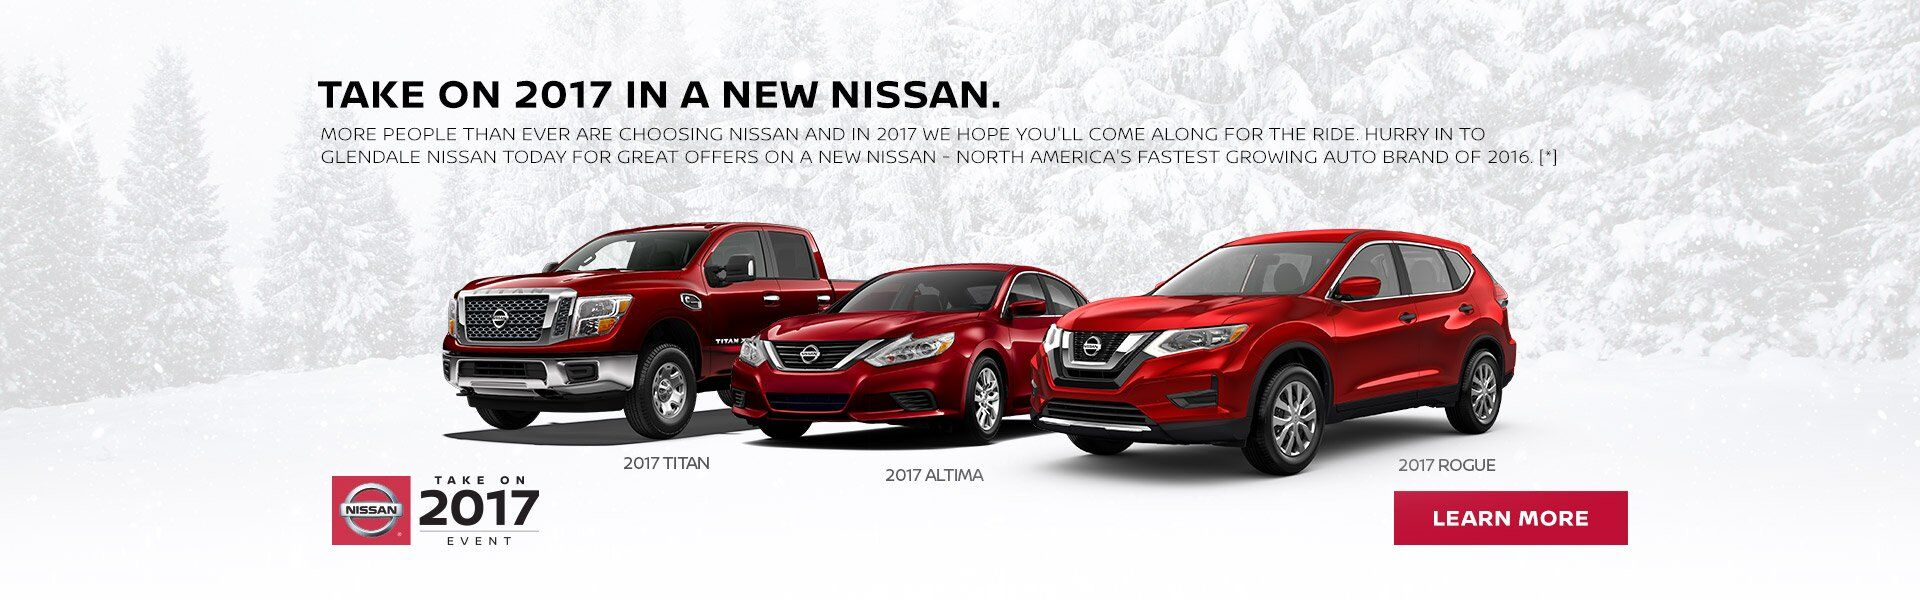 Take on 2017 in a new Nissan from Glendale Nissan